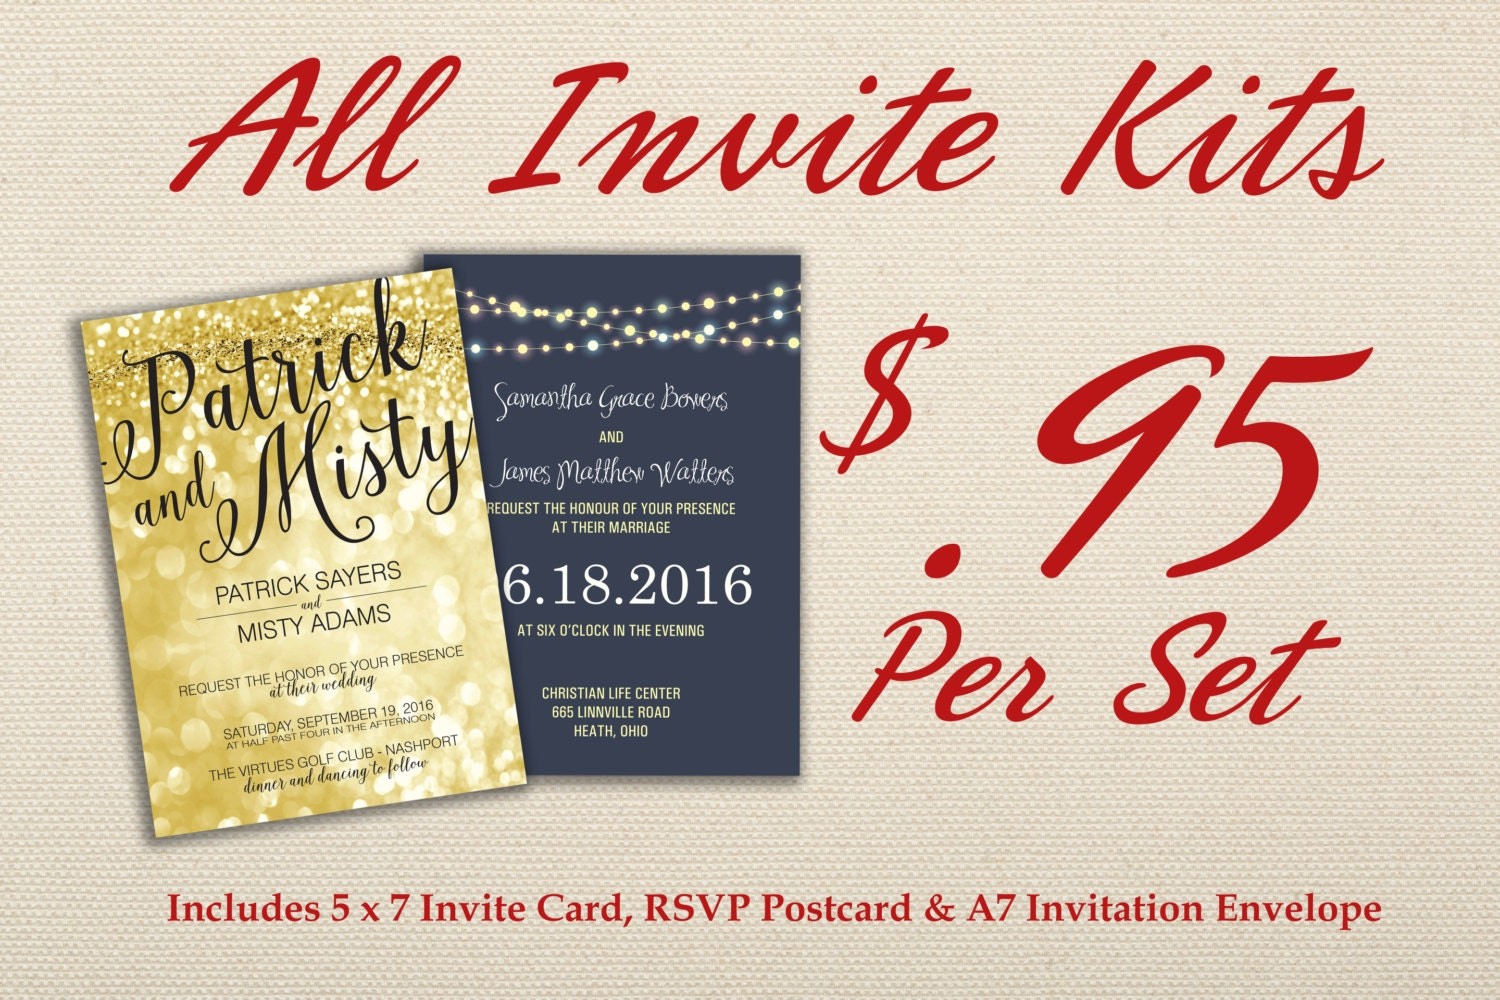 Where To Get Cheap Wedding Invitations: Affordable Wedding Invitation Set Printed With RSVP Cheap